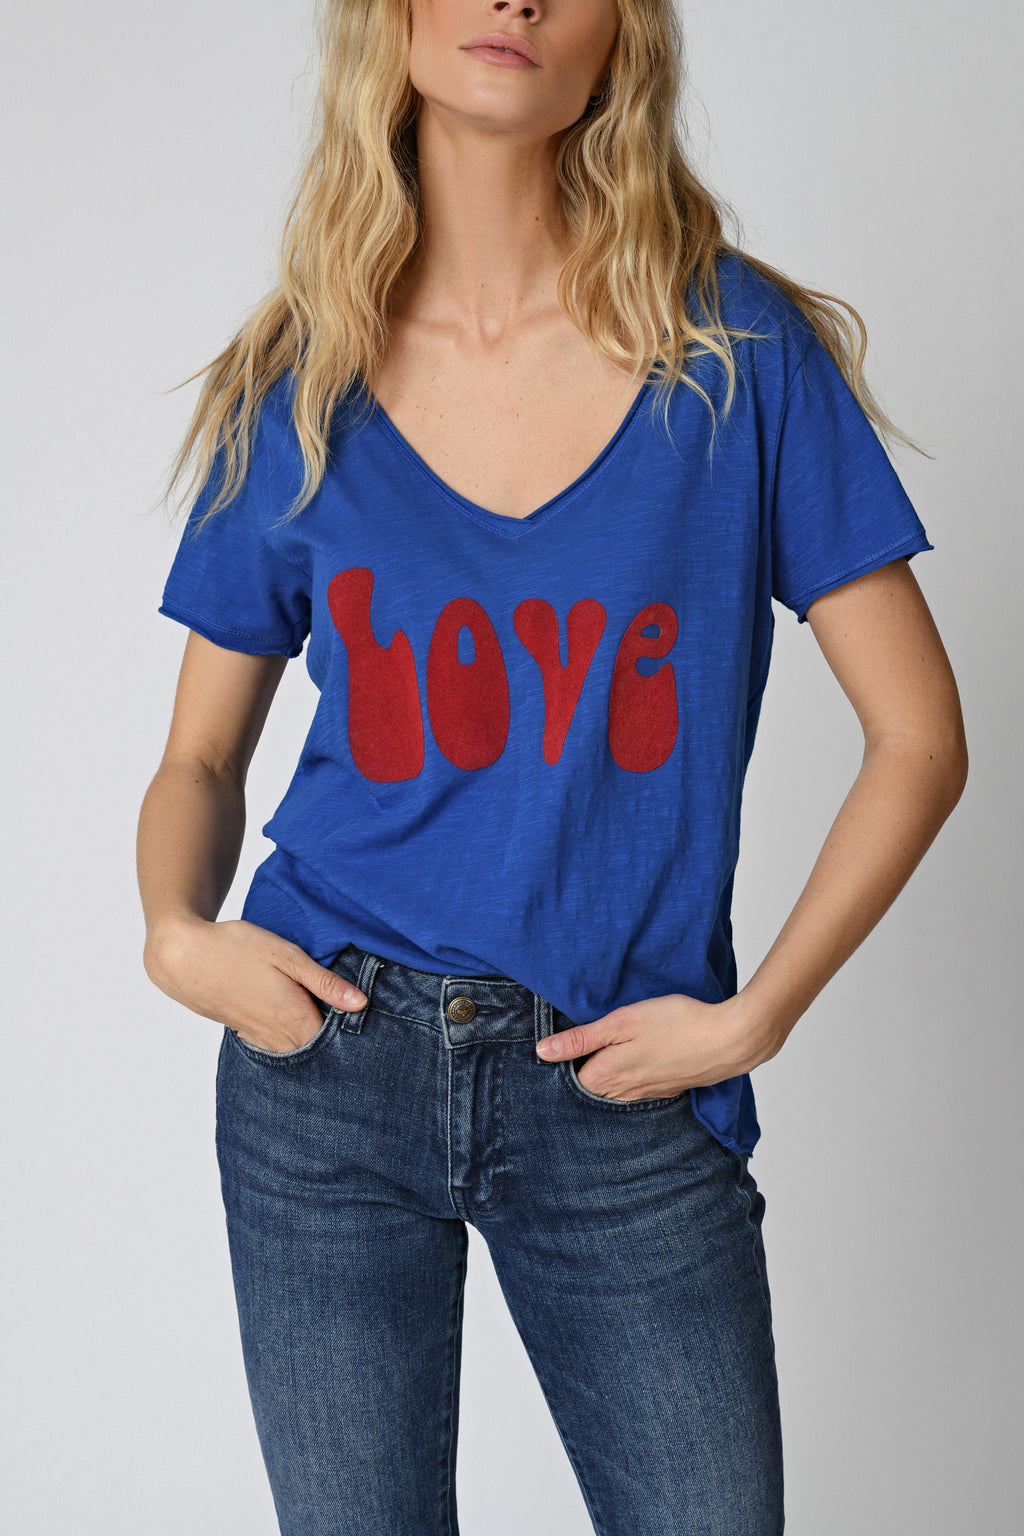 Five Jeans TSE2124 Love T-Shirt French Blue